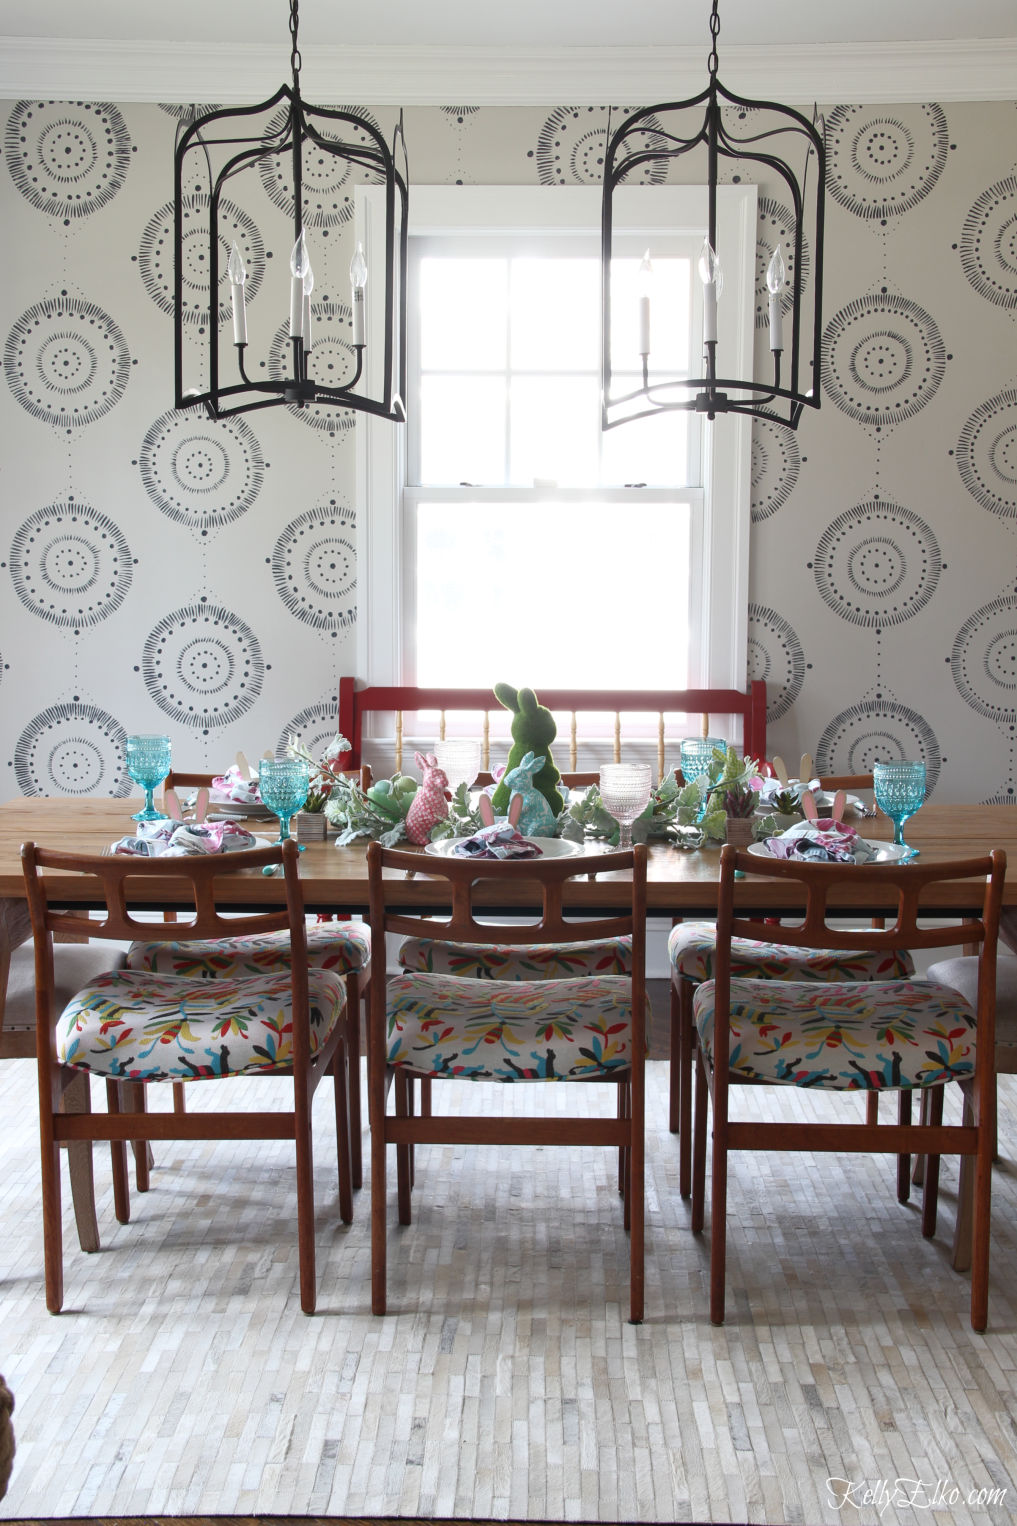 Love this hand painted wall mural and pair of huge lanterns in this dining room kellyelko.com #diningroom #diningroomdecor #murals #lighting #diningroomlighting #midcenturymodern #diningroomfurniture #ourarticle #article #bohodecor #eclecticdecor #springdecor #springtable #eastertable #cowhide #otomi